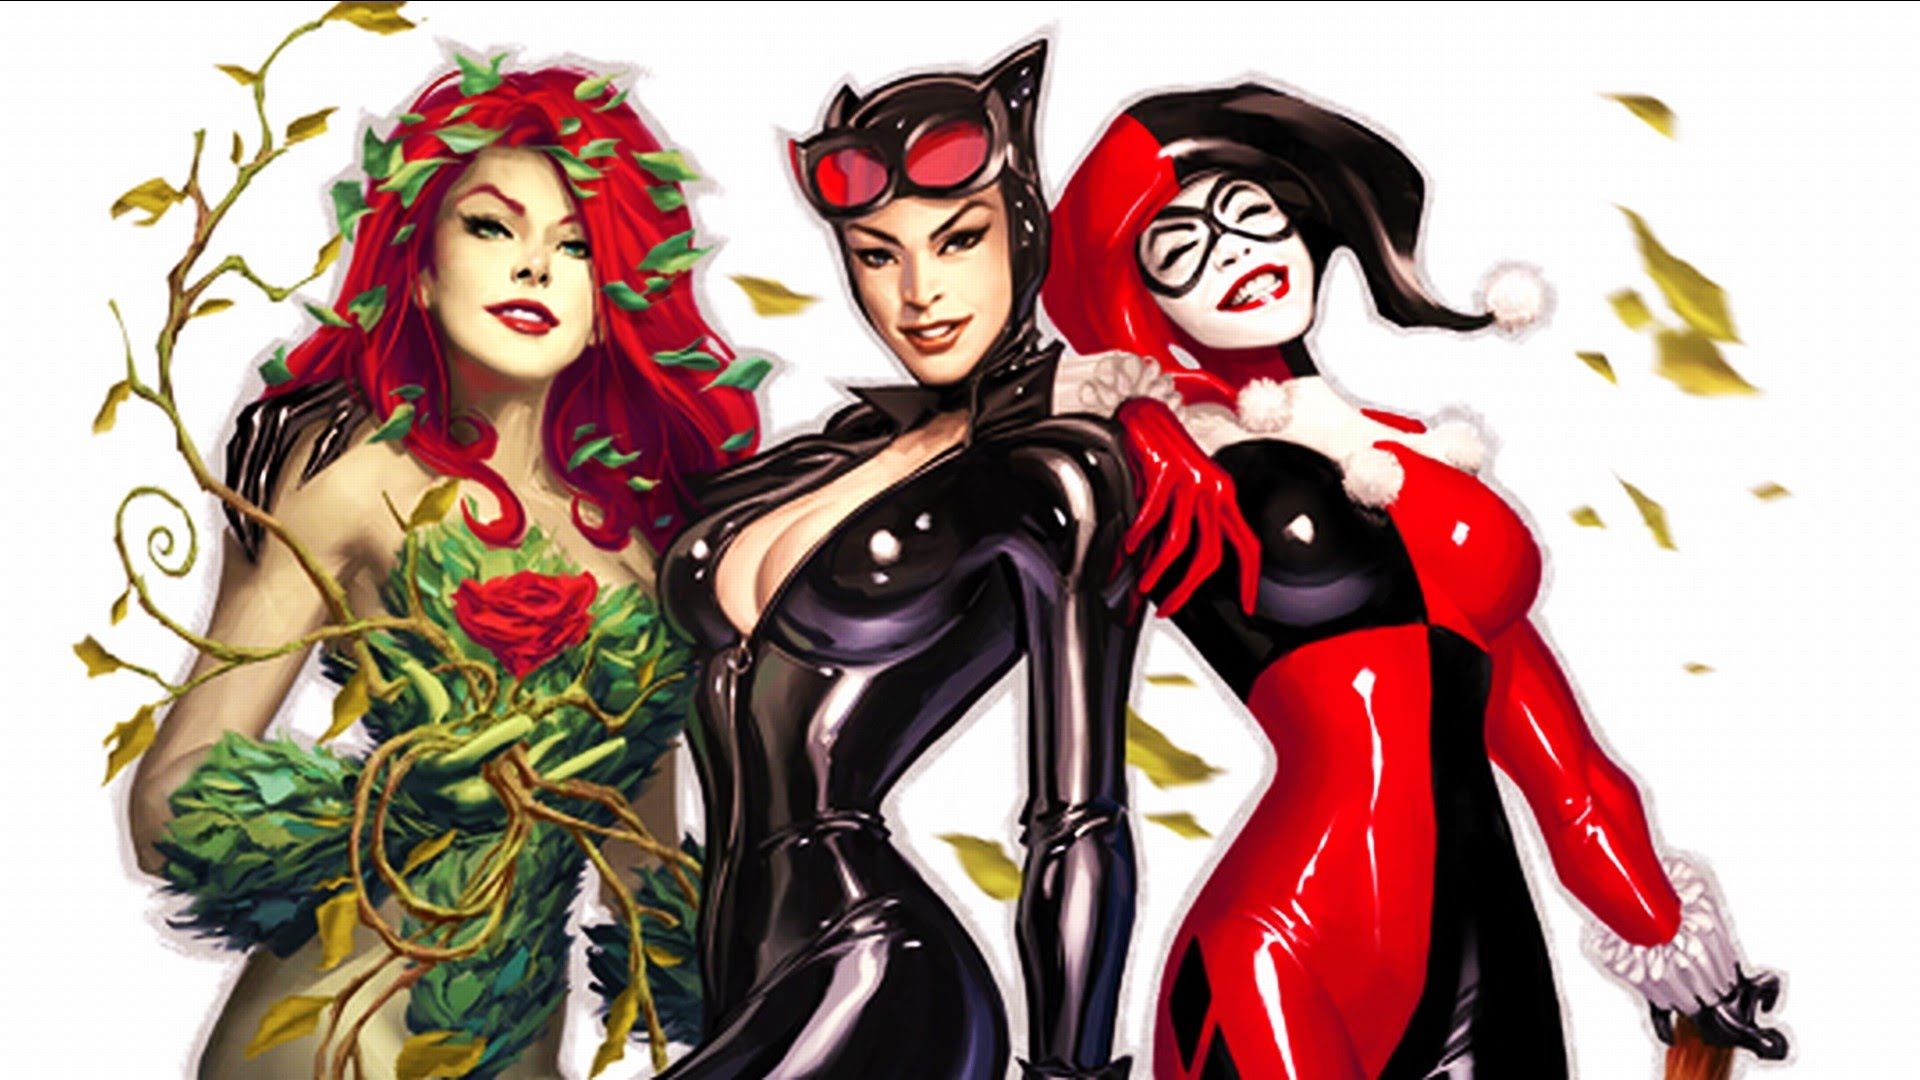 David Ayer retrouve Margot Robbie pour Gotham City Sirens